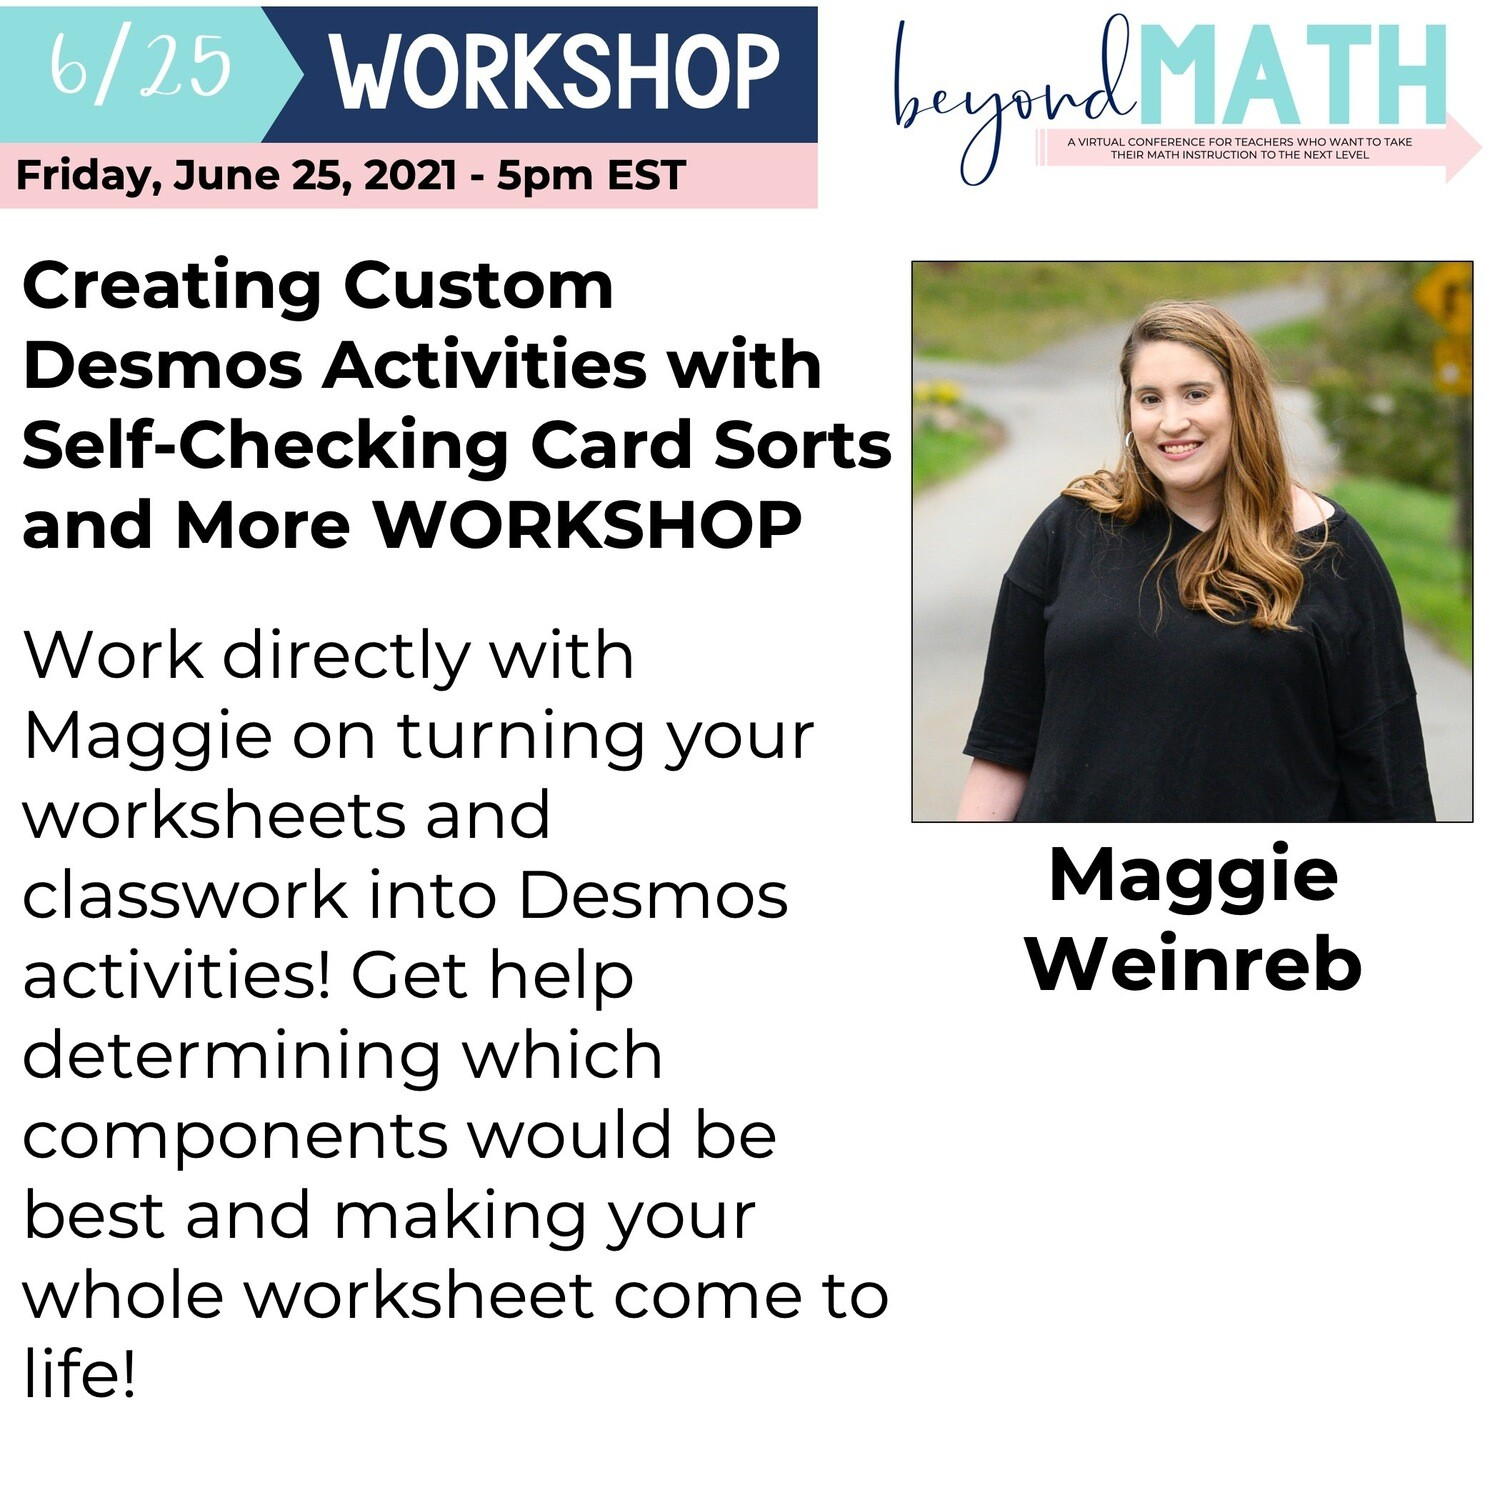 Creating Custom Desmos Activities with Self-Checking Card Sorts and More WORKSHOP with Maggie Weinreb